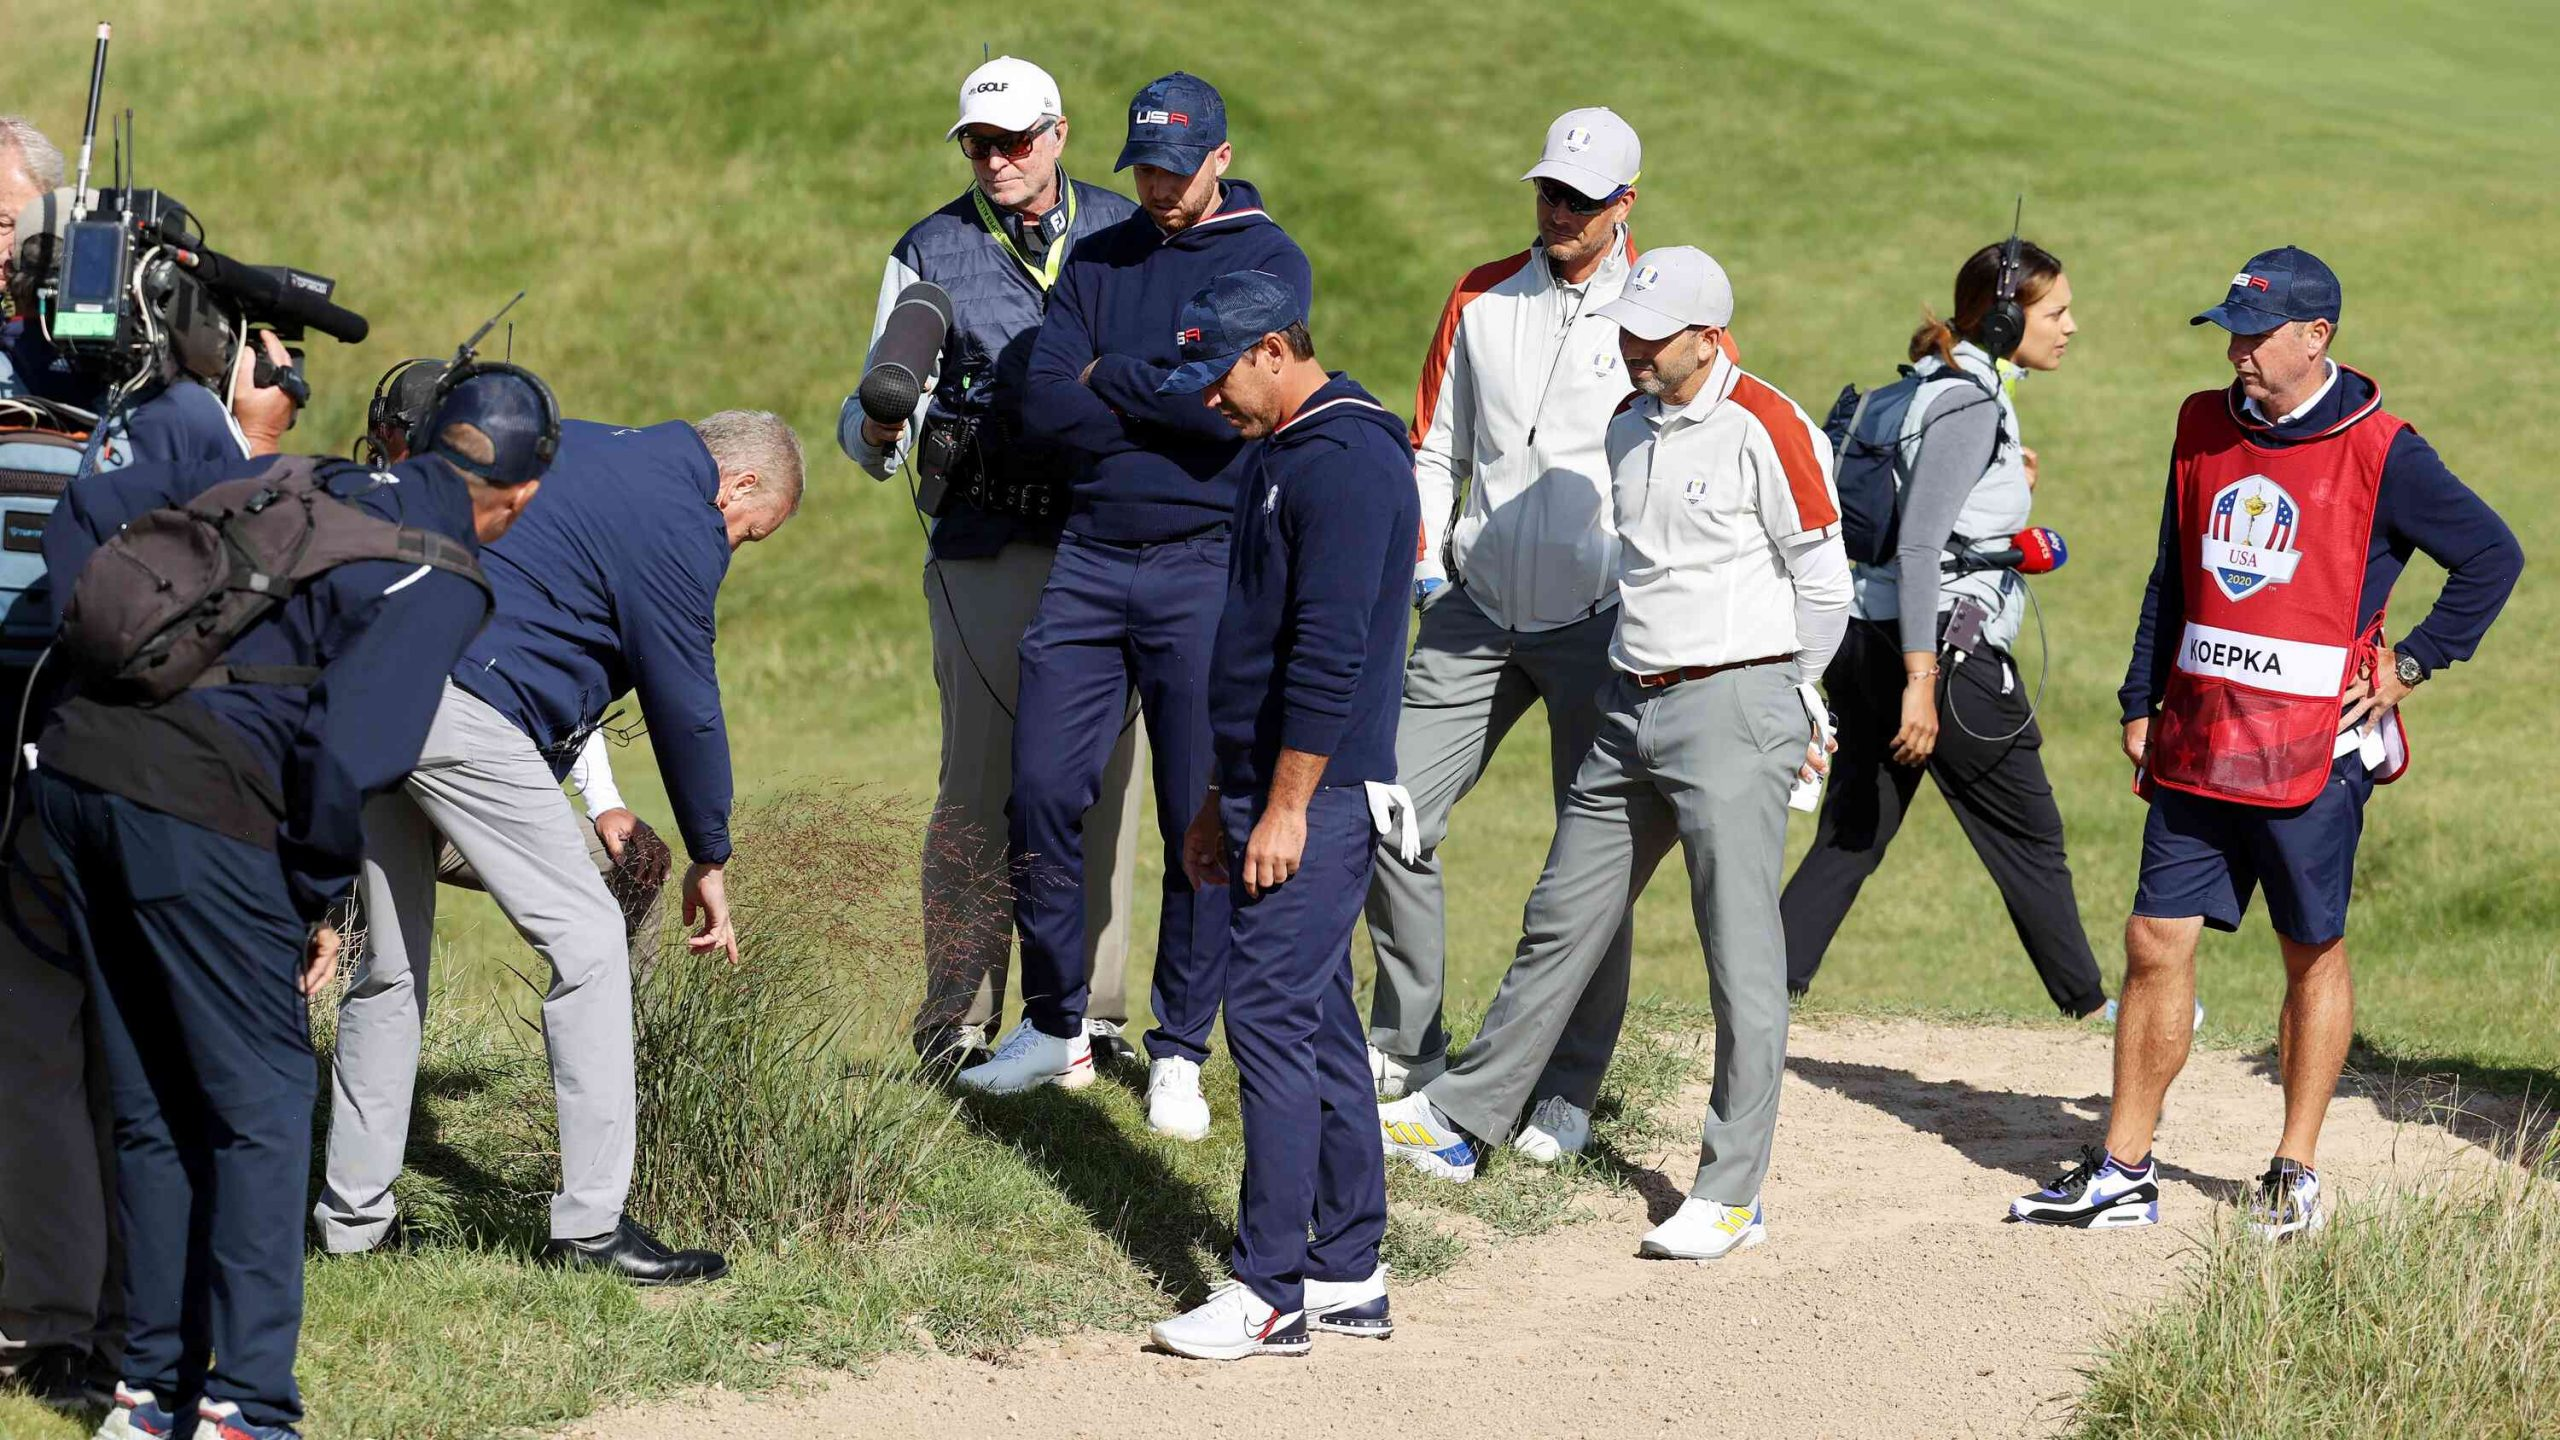 Sergio Garcia's epic eagle putt sinks US at Ryder Cup